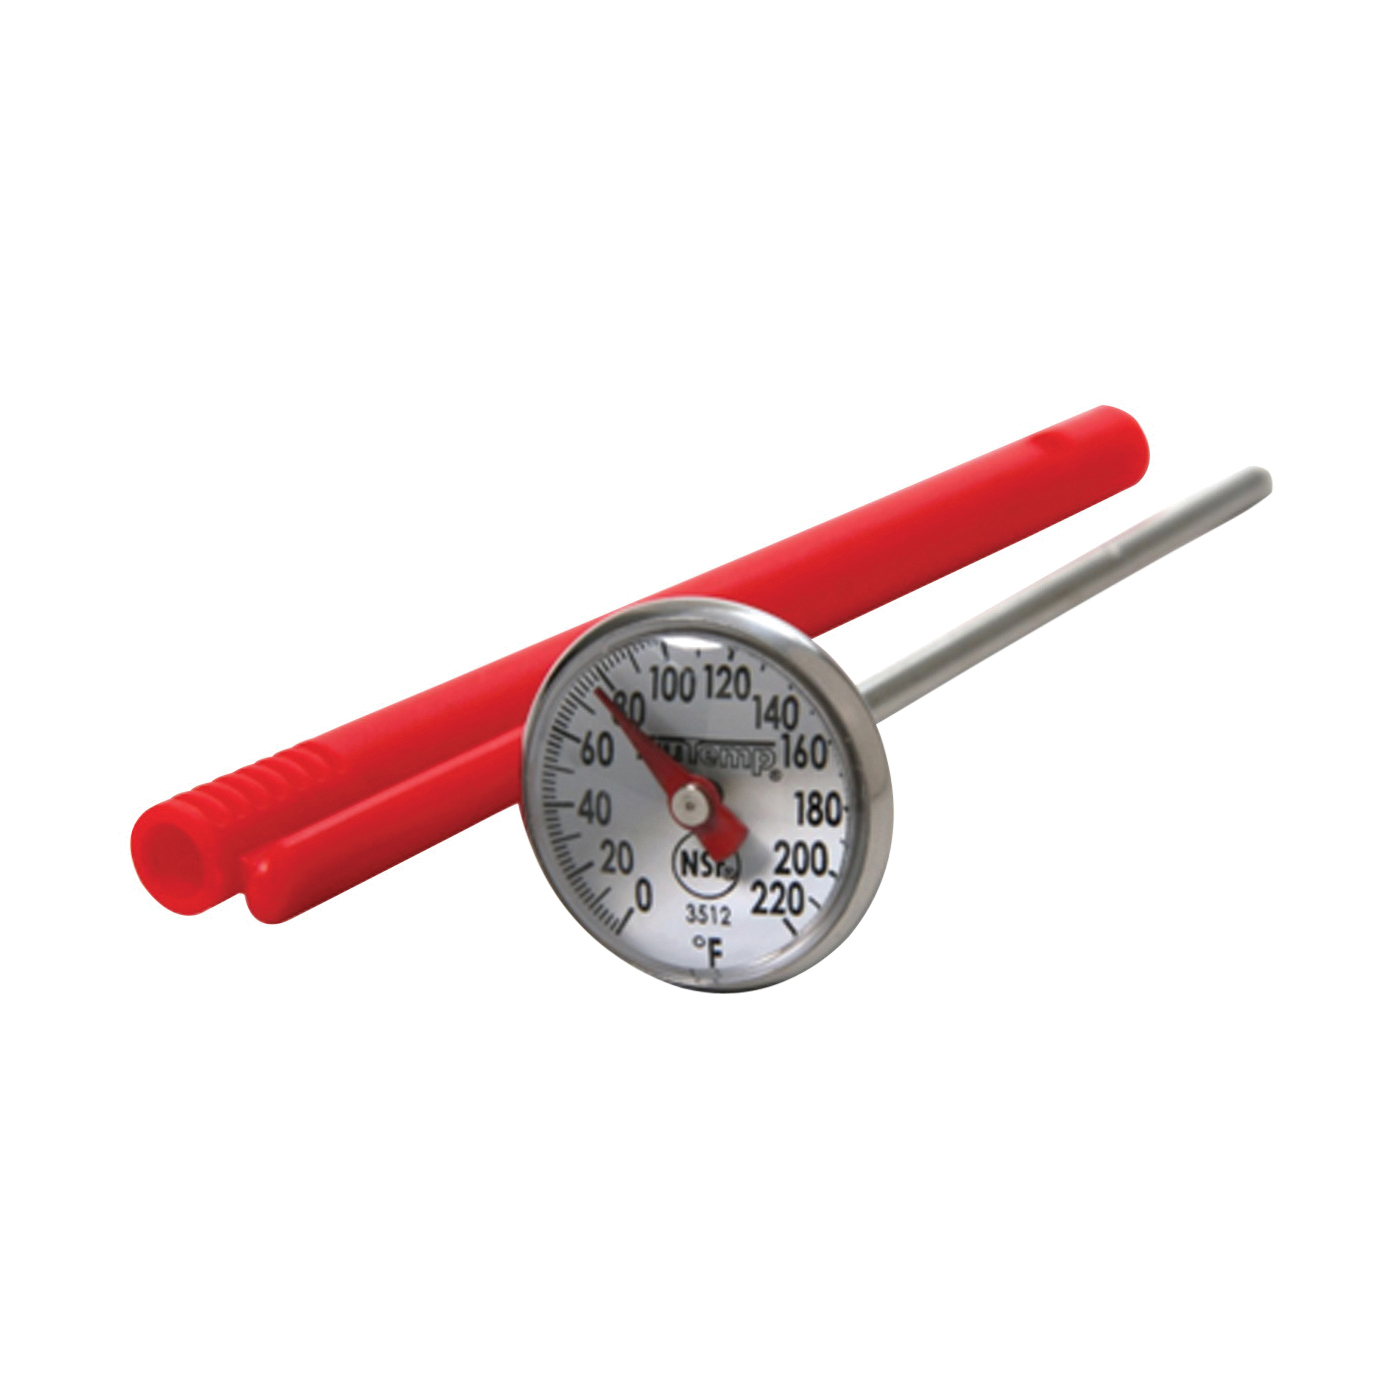 Picture of Taylor 3512 Instant Read Thermometer, 0 to 220 deg F, Analog Display, Gray